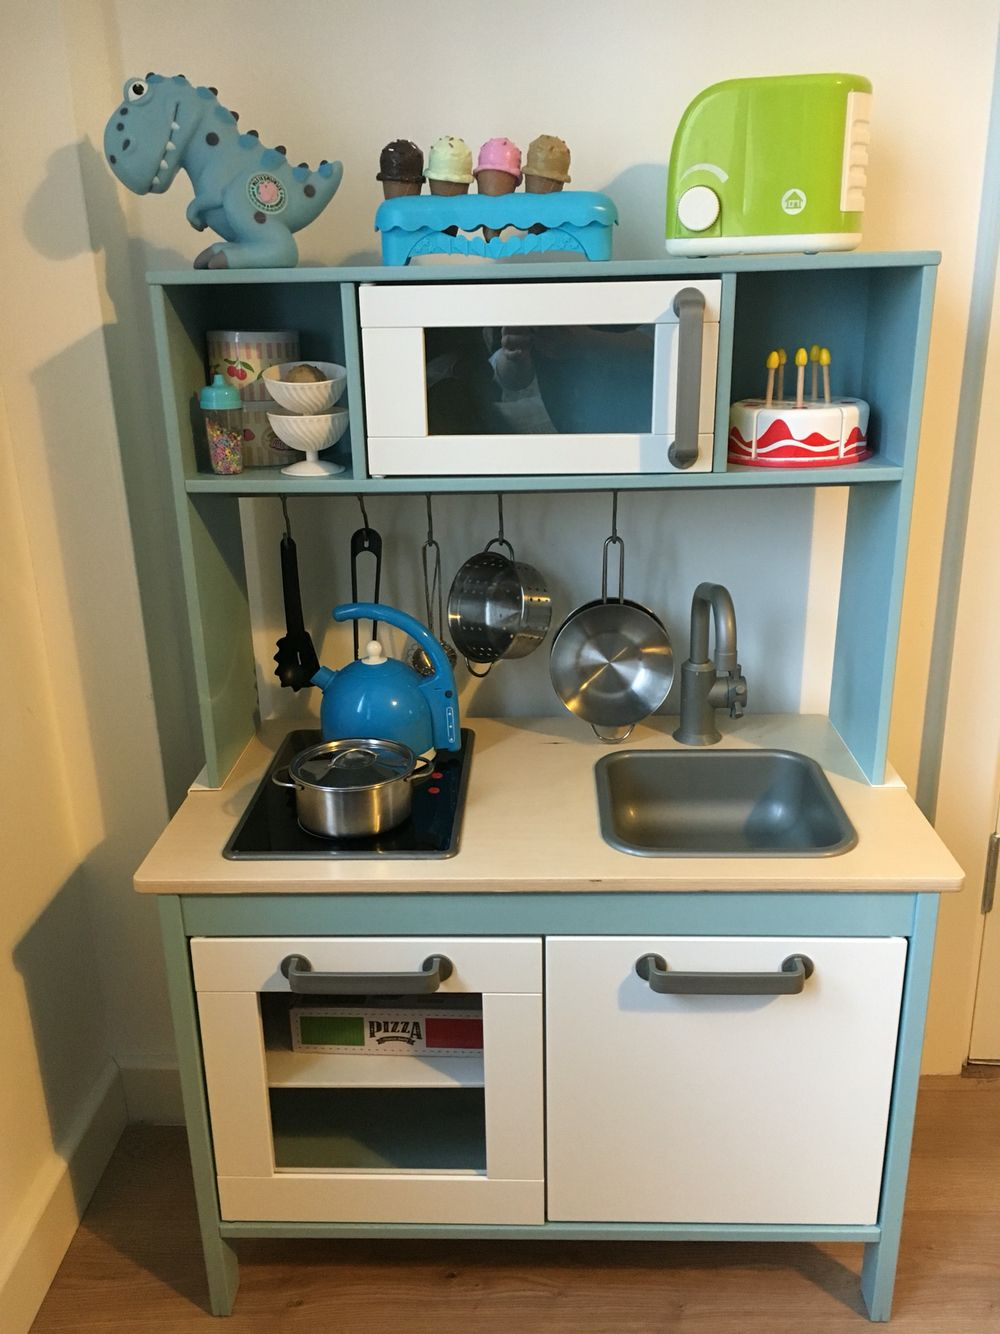 ikea duktig kitchen hack for a little boy zora. Black Bedroom Furniture Sets. Home Design Ideas